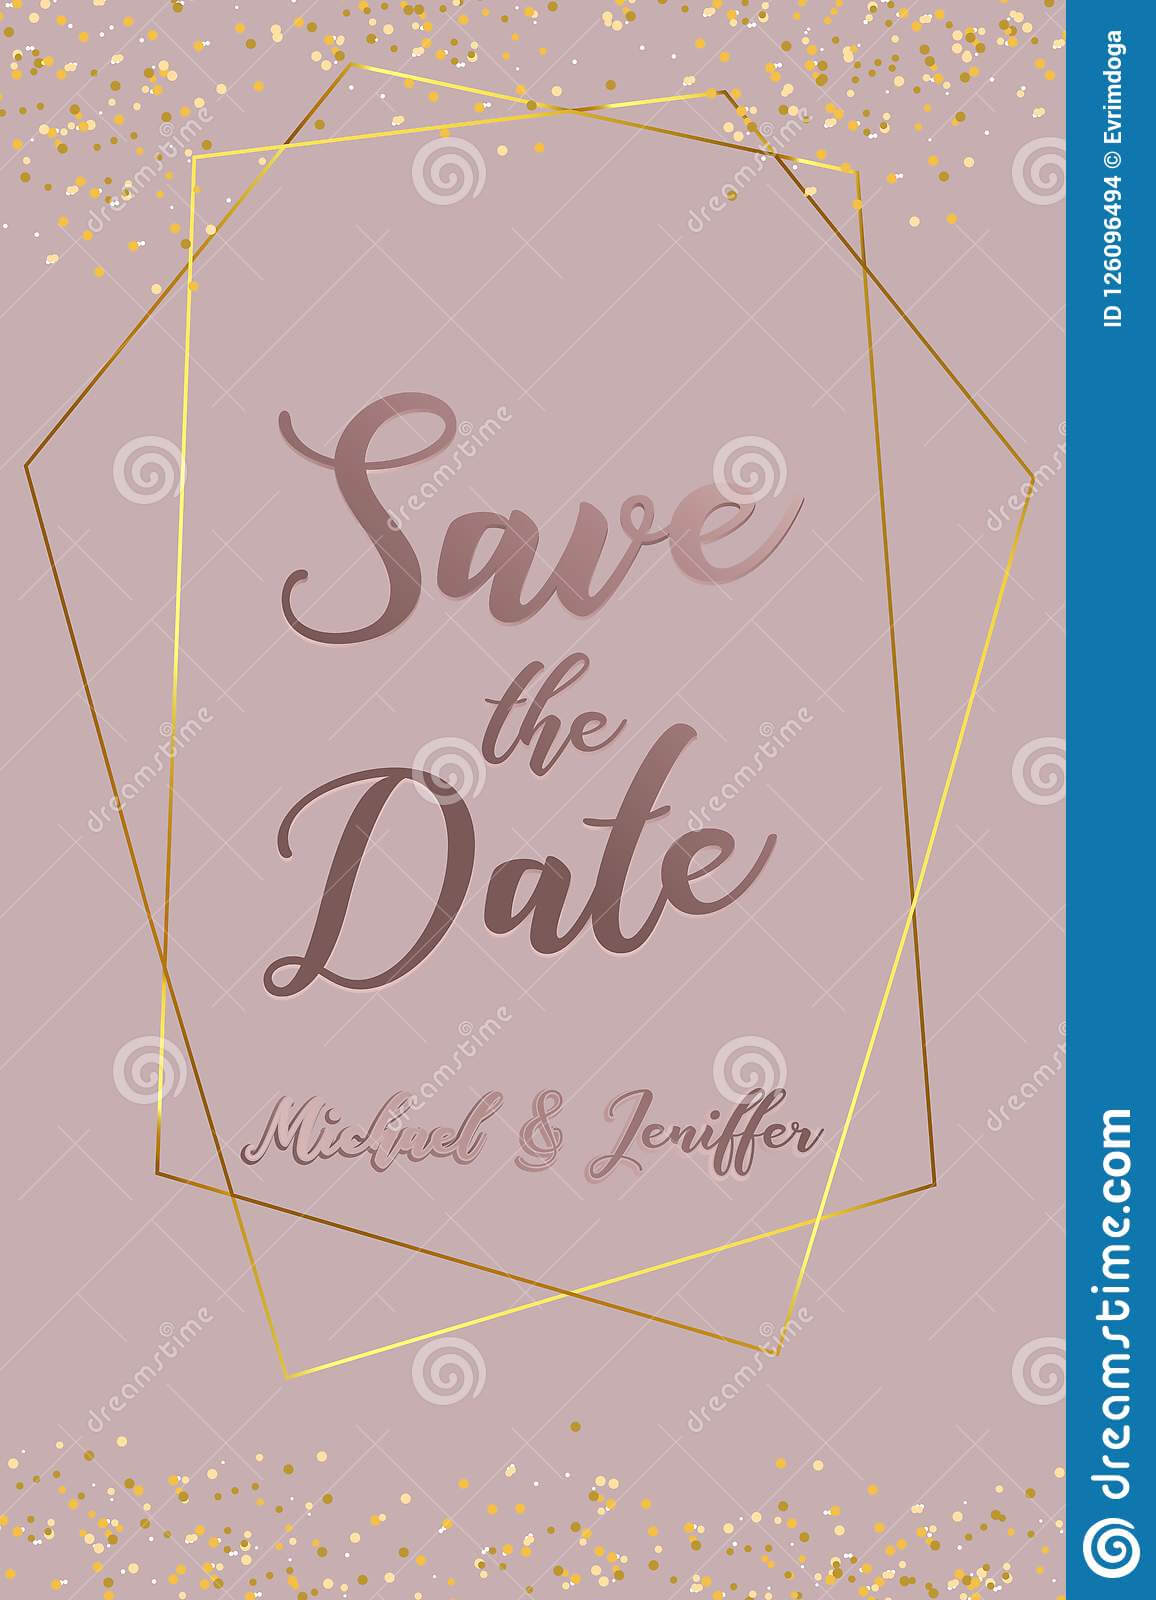 Wedding Invitation, Thank You Card, Save The Date Card Throughout Save The Date Banner Template